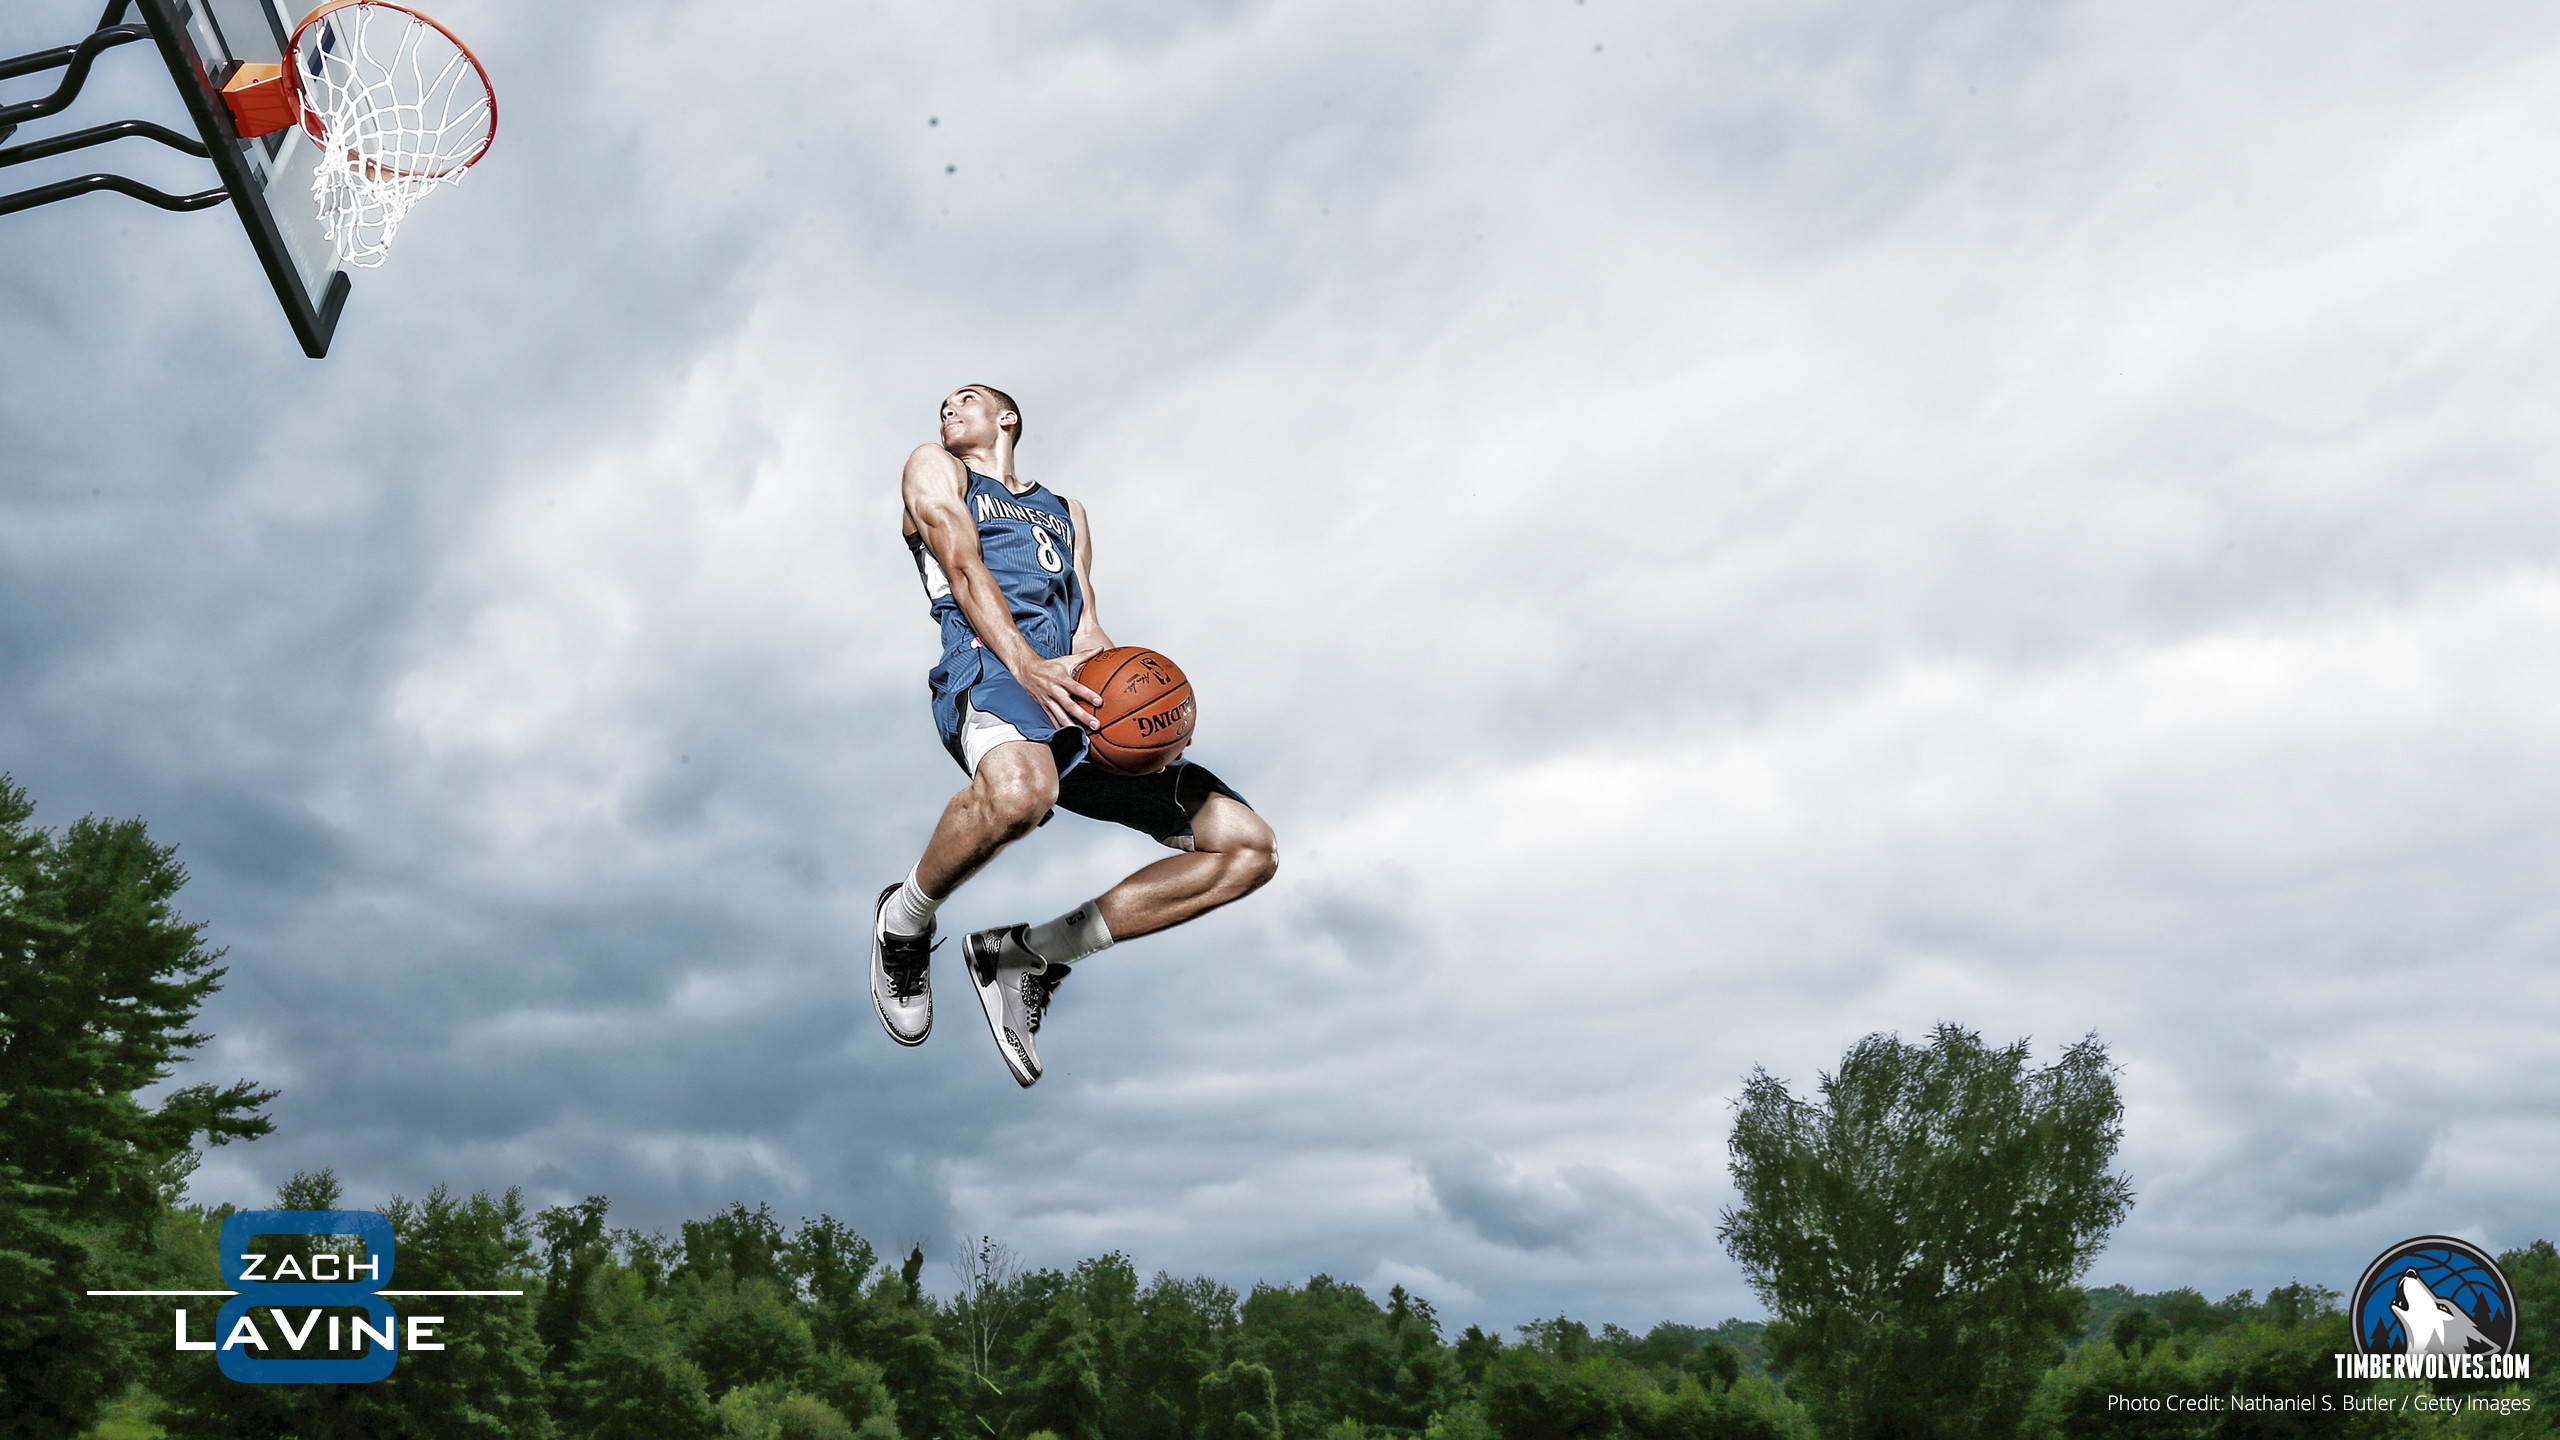 2560x1440 LaVine Rookie Photo Shoot